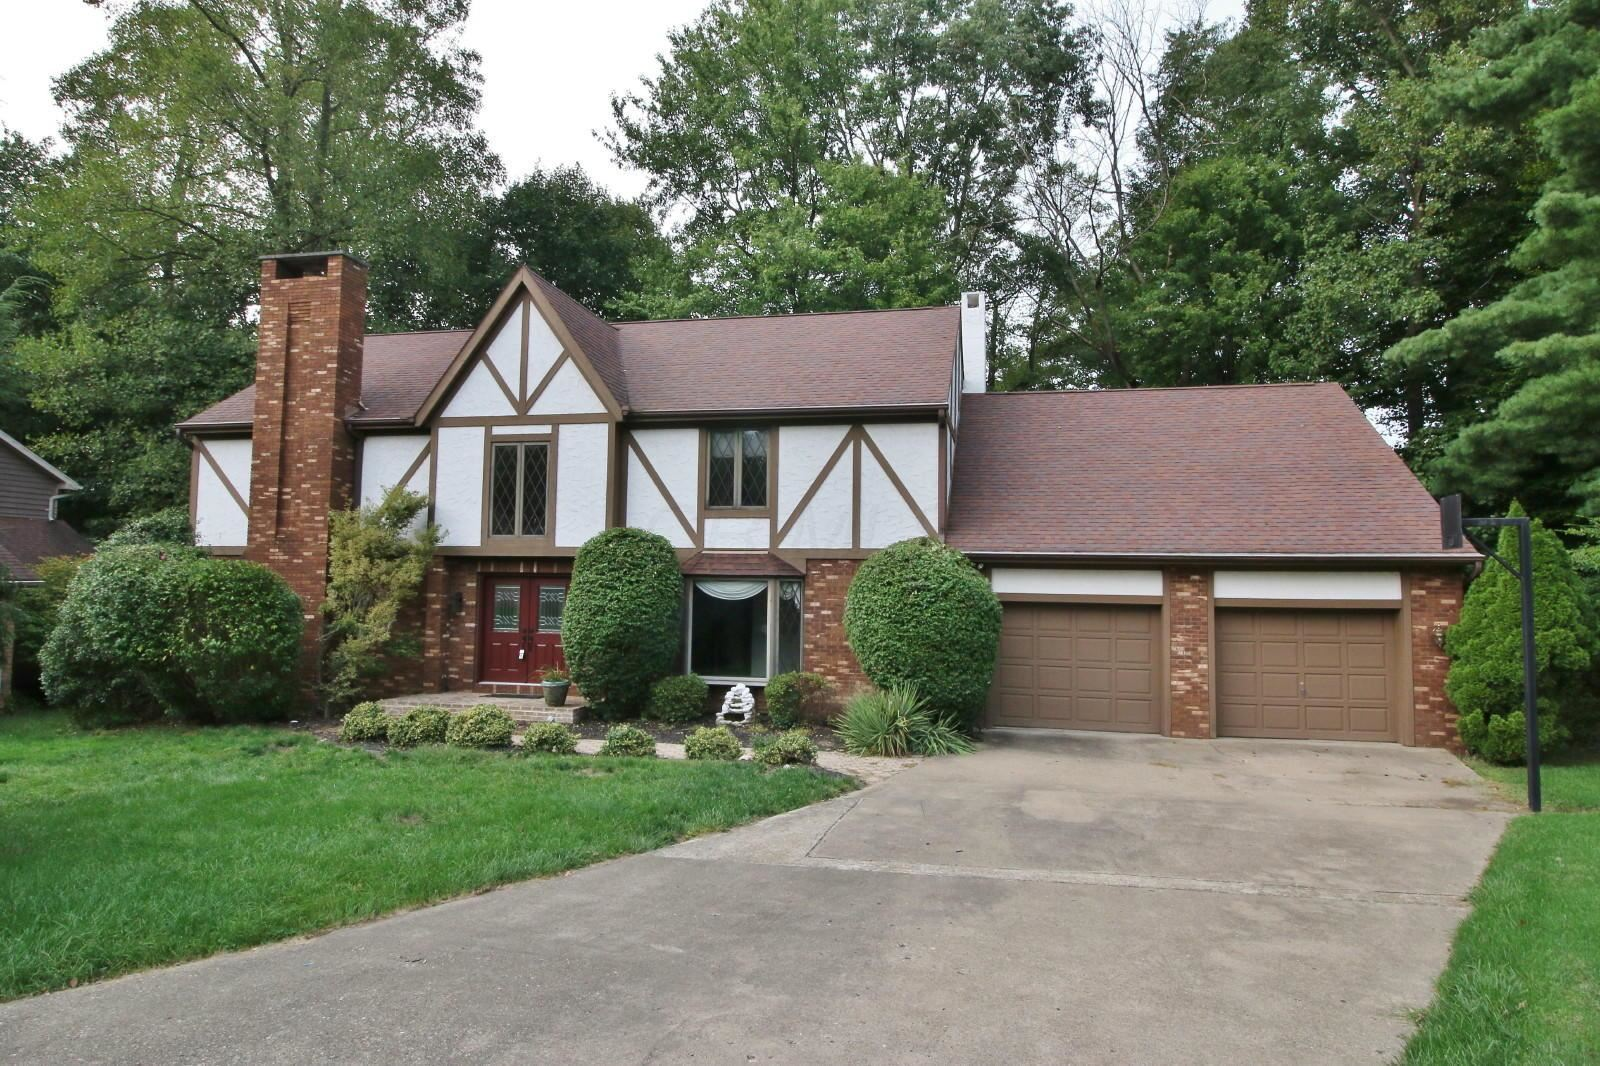 891 Southeast Court, Zanesville, OH 43701 - MLS#: 220019237